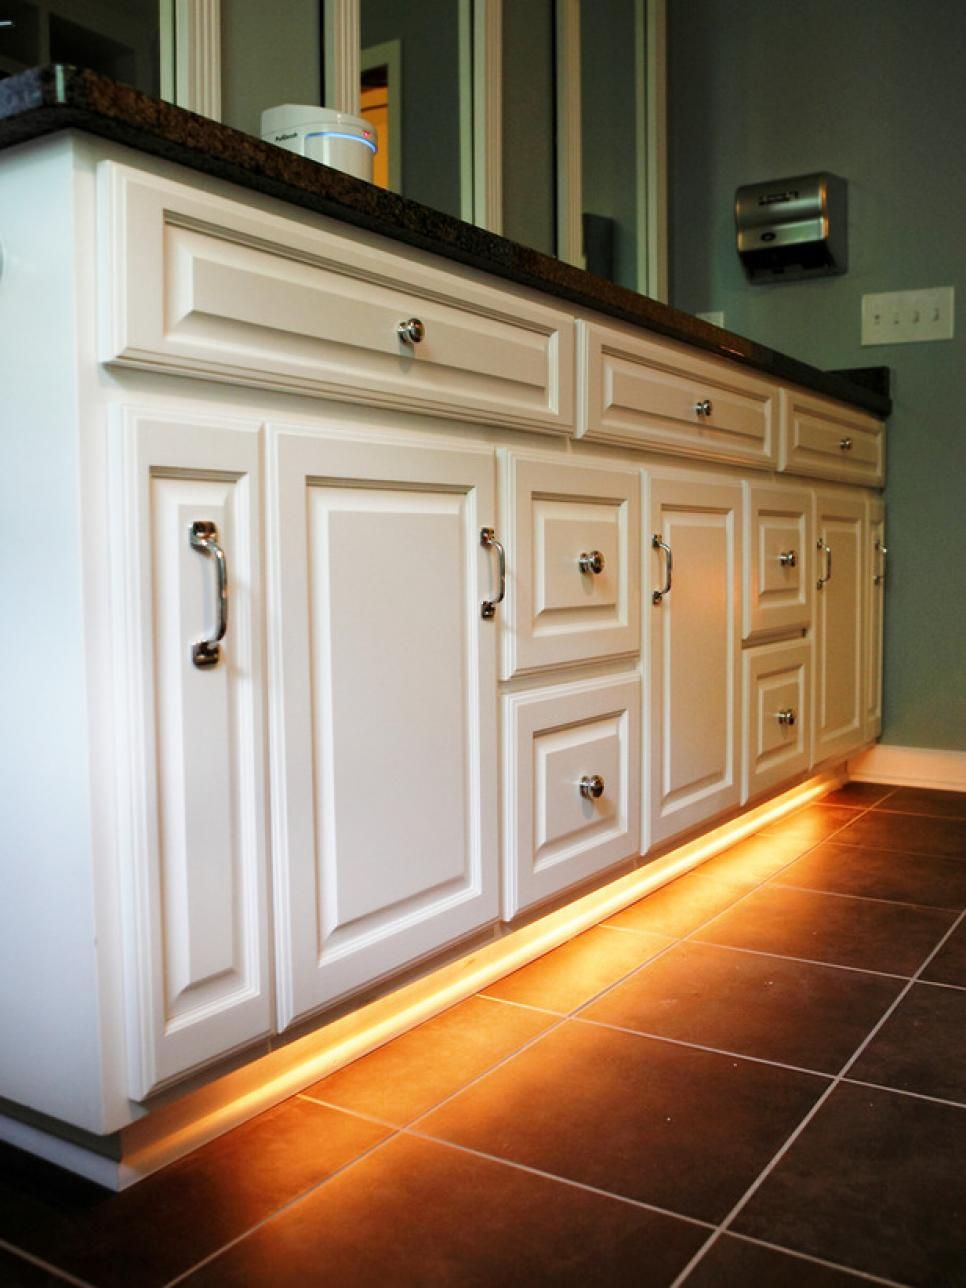 The 10 Best DIY Bathroom Projects   Ideas for the House   Diy home Bathroom Under Counter Lighting Ideas on bathroom tile ideas, bathroom light fixtures ideas, bathroom granite ideas, bathroom skylight ideas, bathroom double sink ideas, bathroom custom cabinets ideas, bathroom pantry ideas,